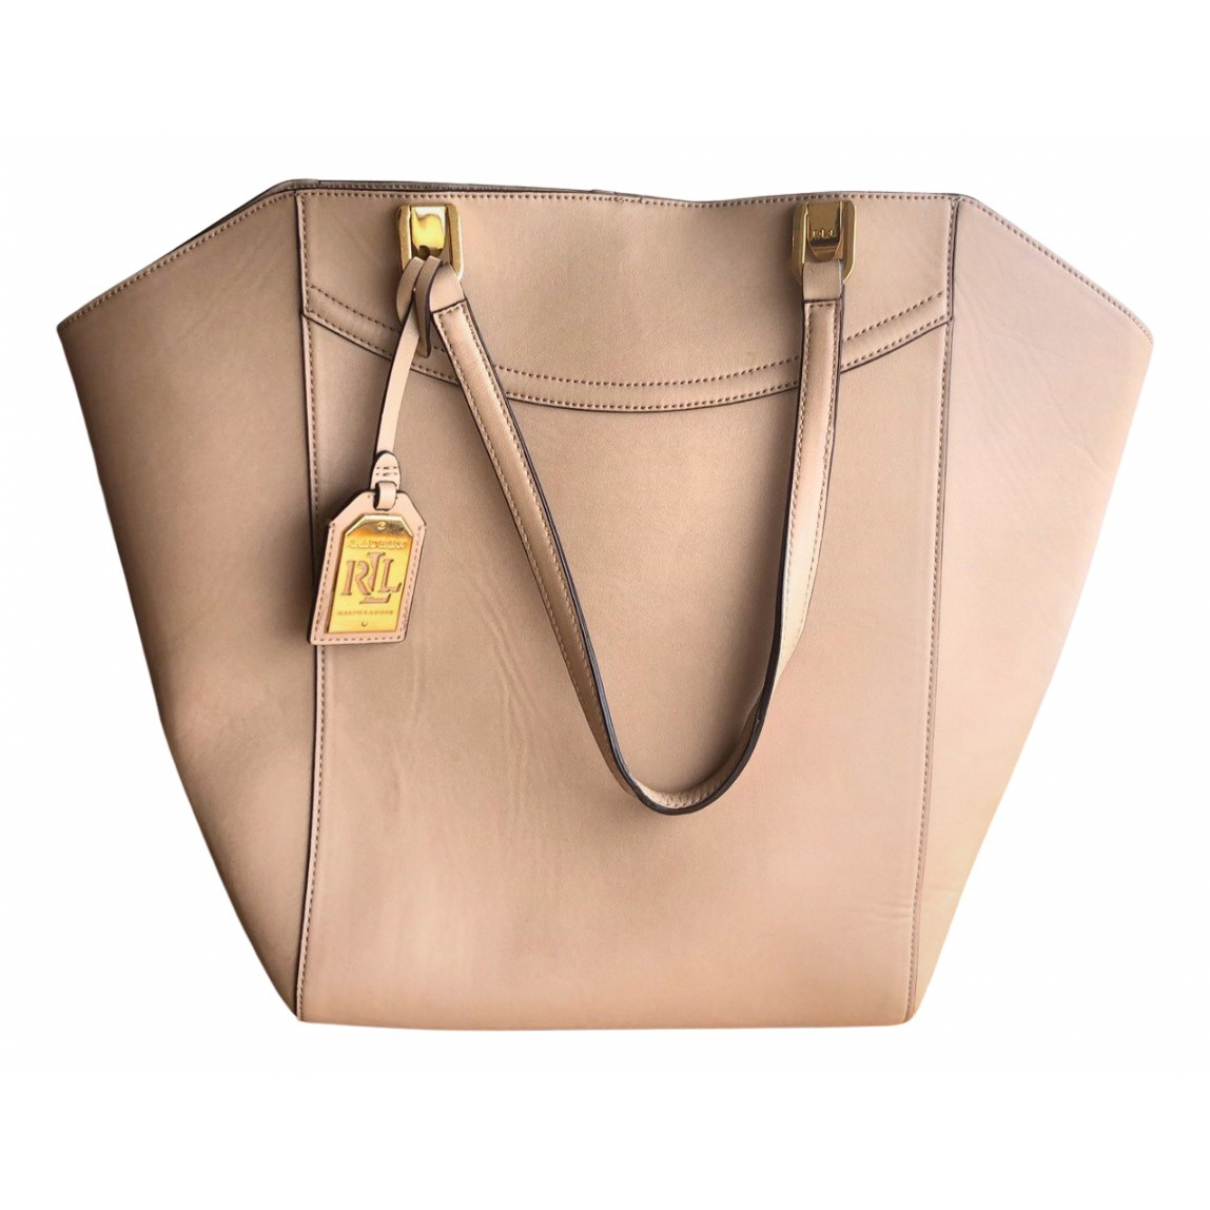 Lauren Ralph Lauren N Beige Leather handbag for Women N